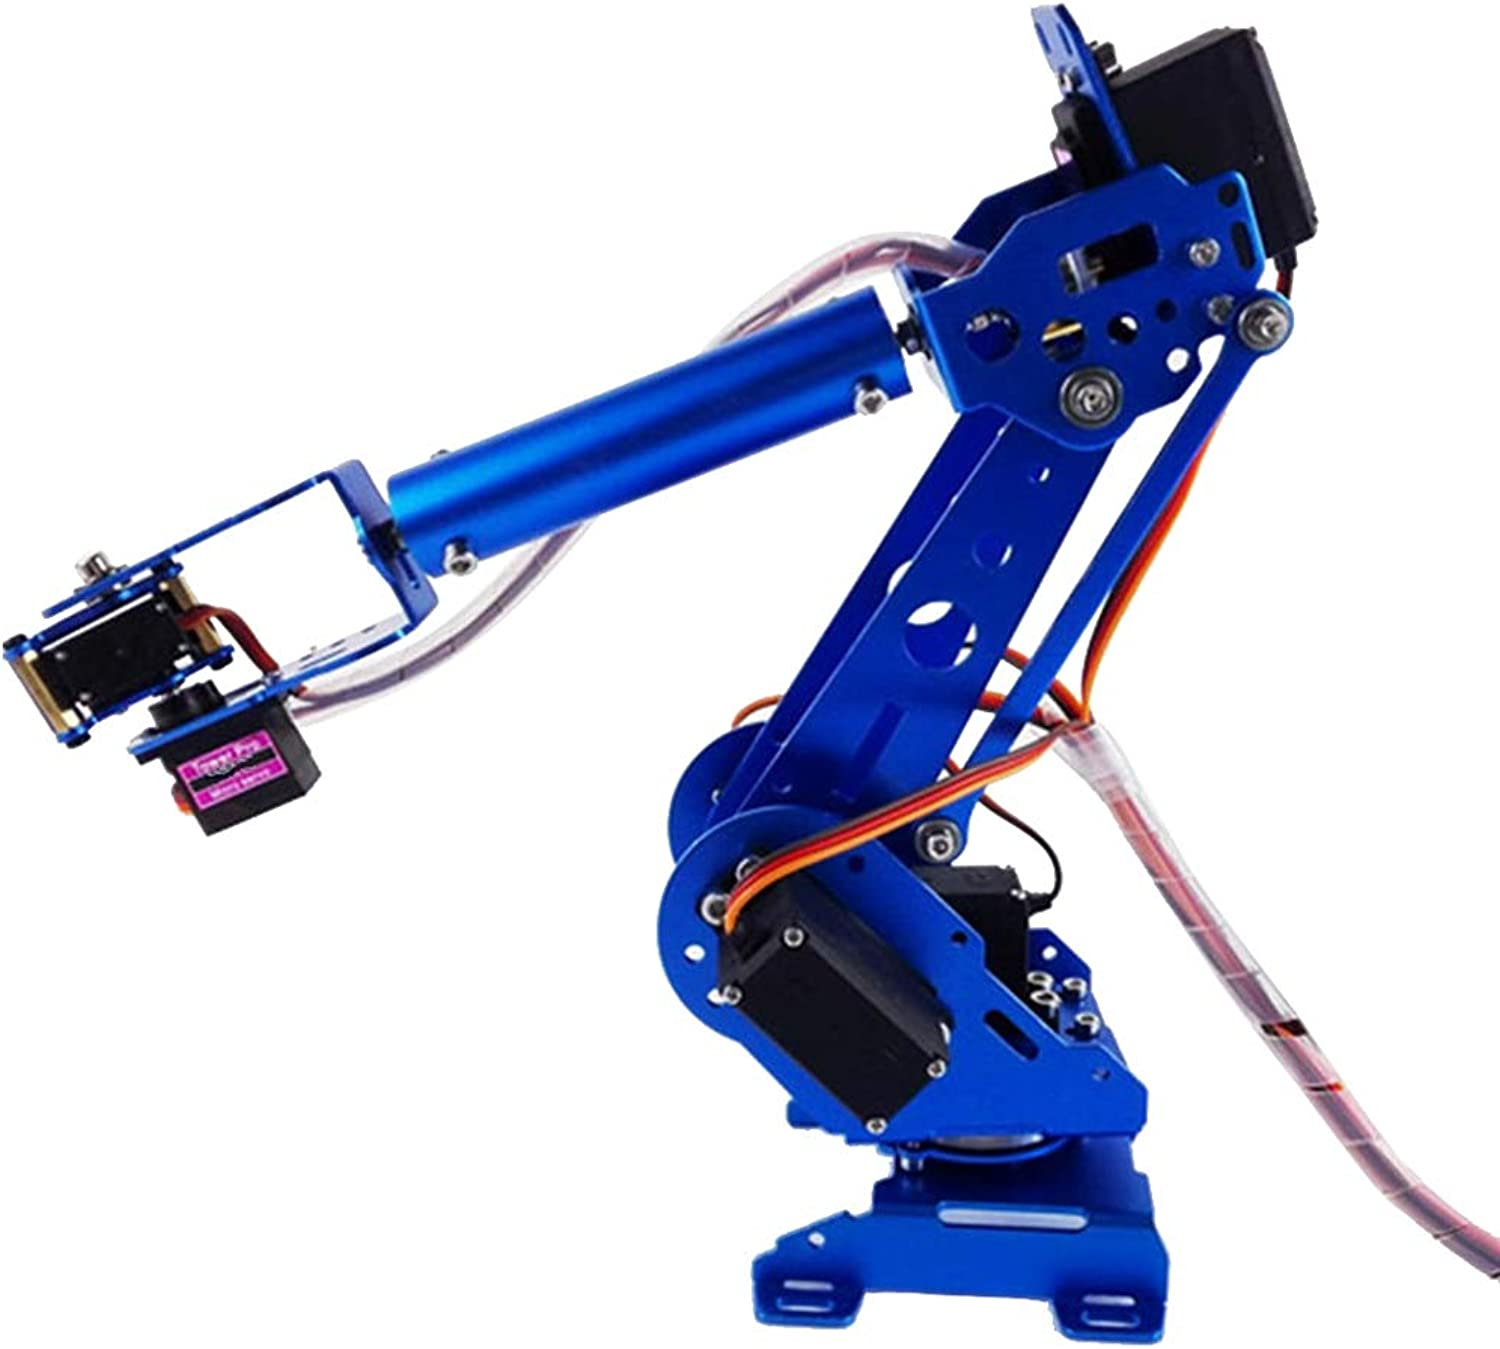 Baoblaze 6 Degree of Freedom Assembled Robot Arm Kit Robotic